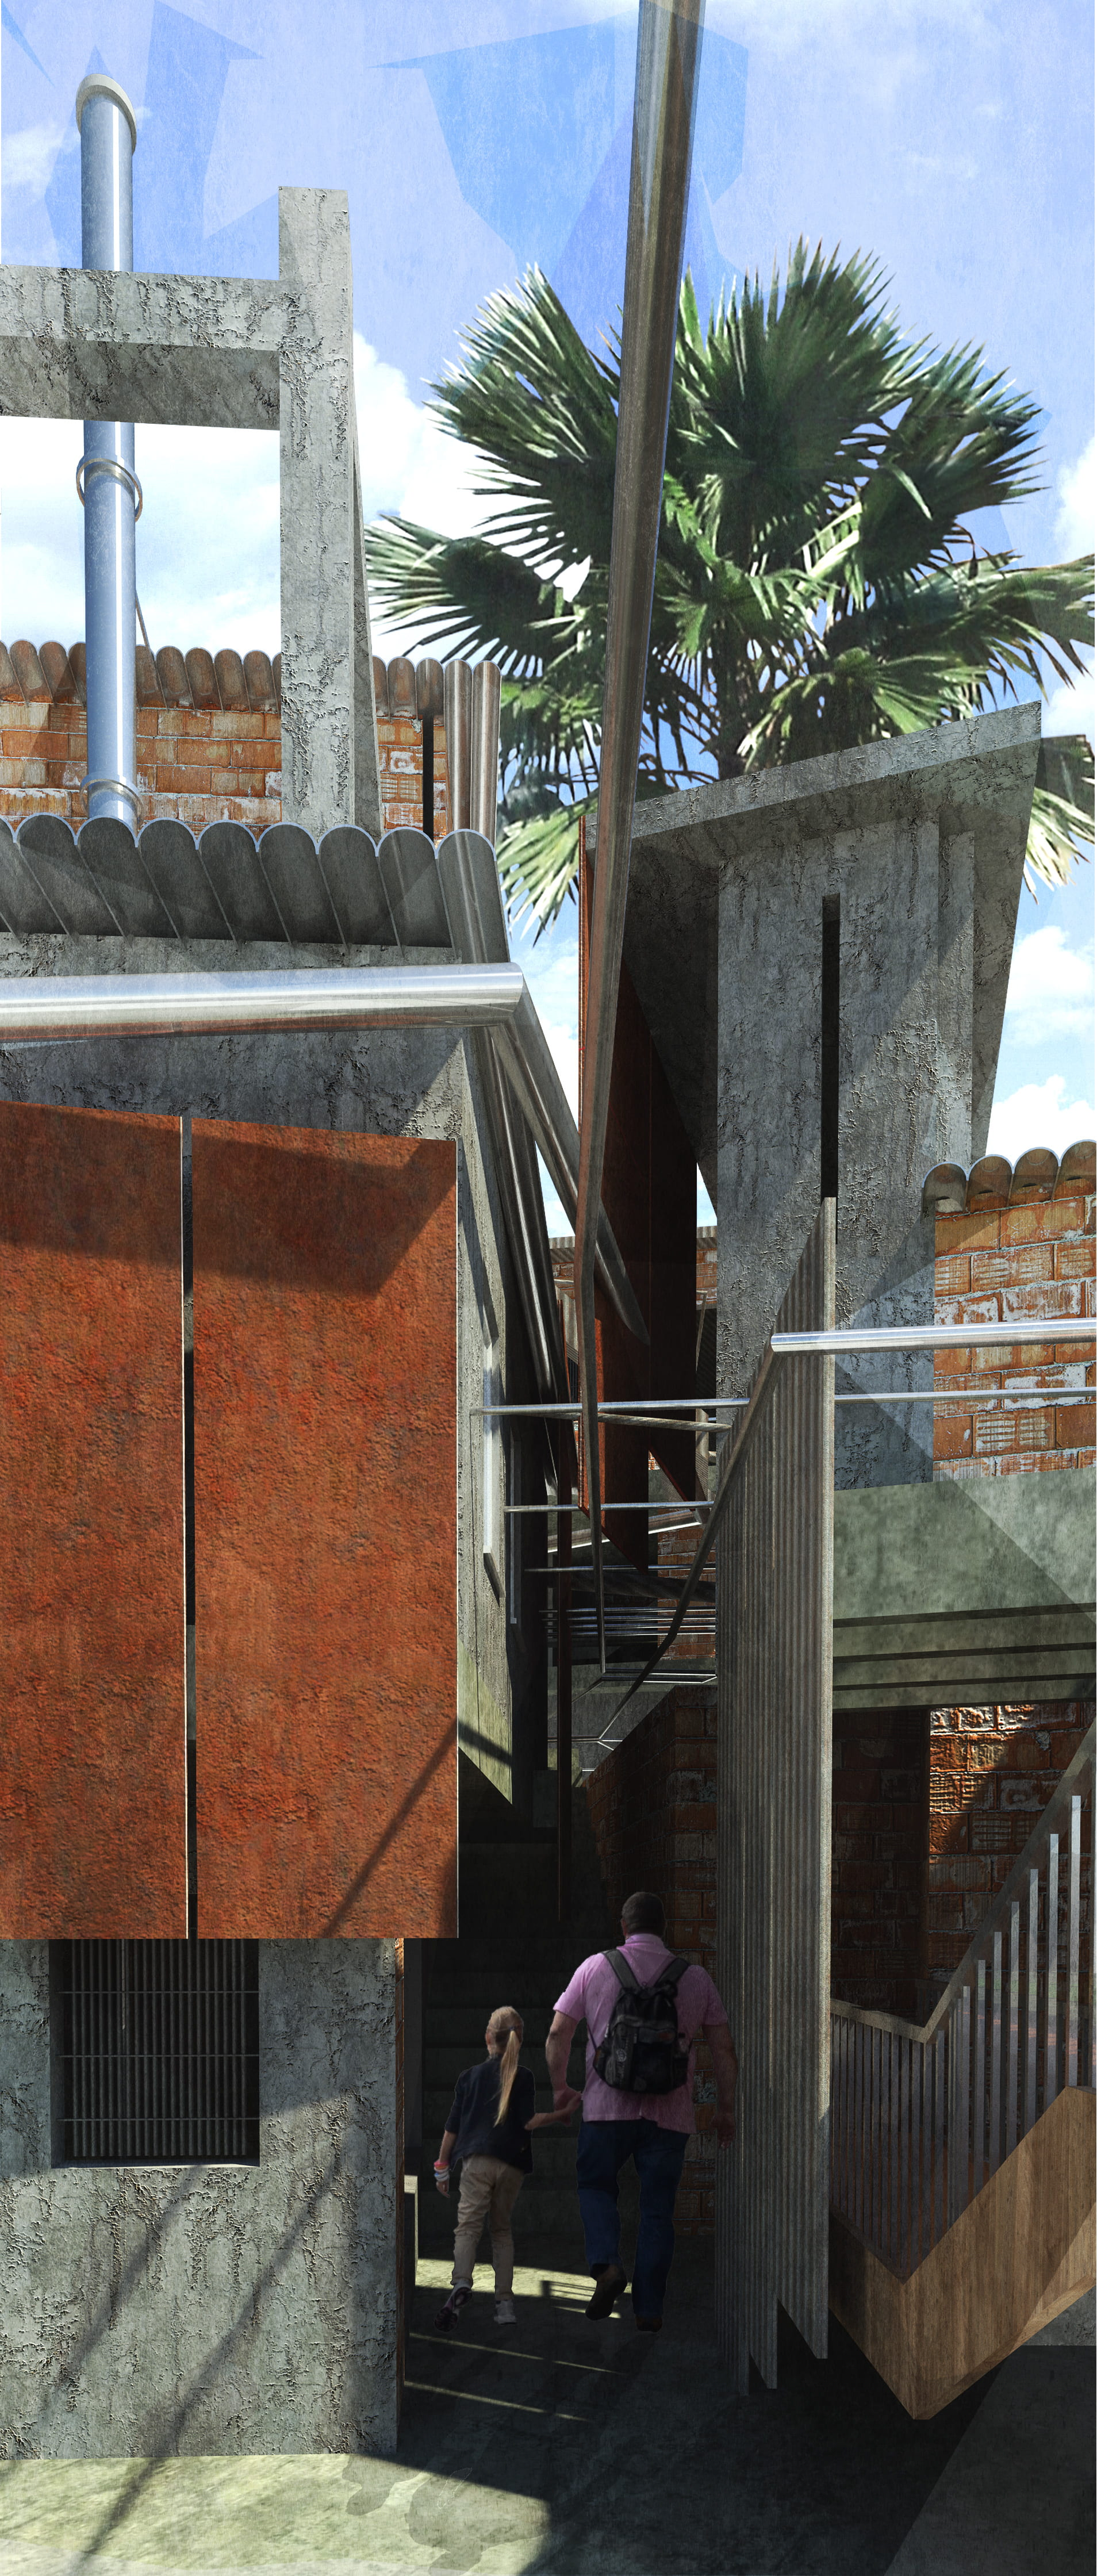 The reimagining of the existing alleyways within the favela creates an architectural conversation between light, infrastructure and materiality.